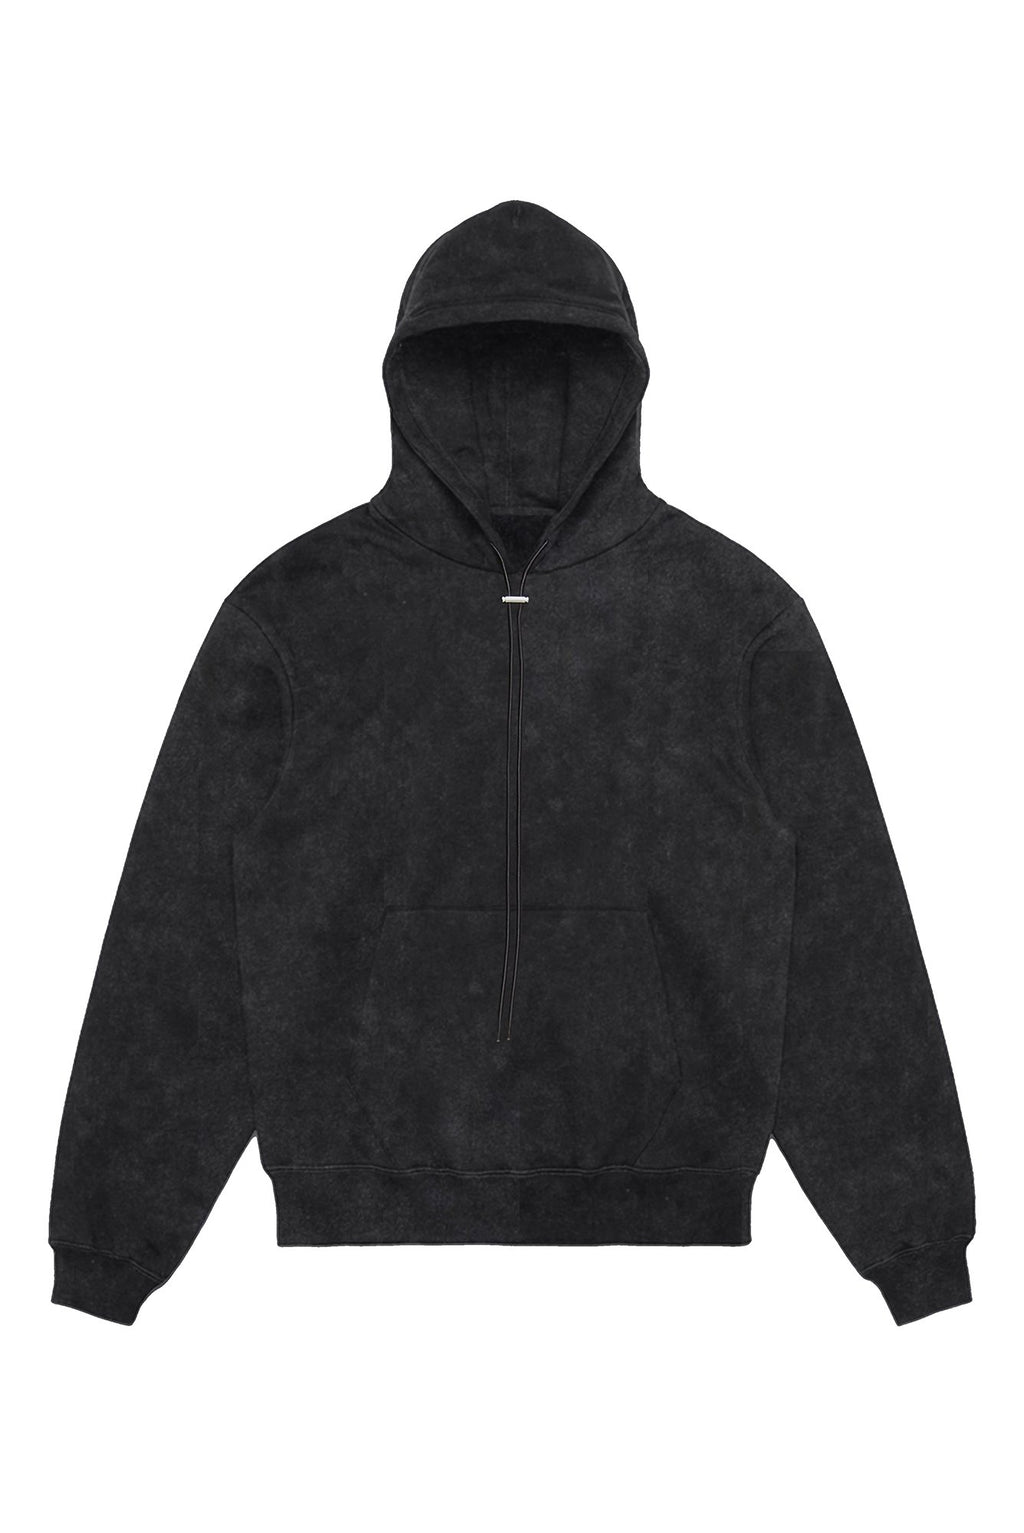 DOVE ENZYME WASH BLACK DRAWSTRING HOODIE